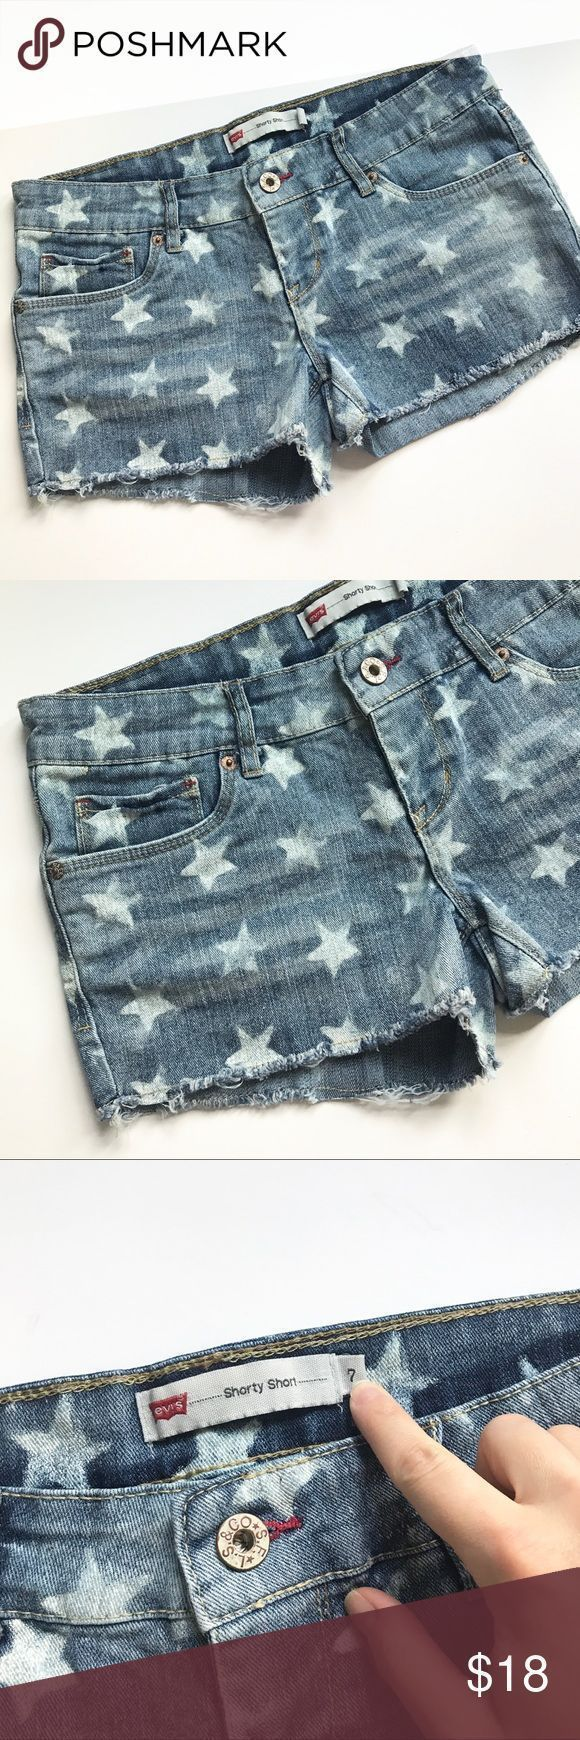 Levi's Denim Star Shorty Shorts - Size 7 Denim cutoff shorts with an all over ... #denimcutoffshorts Levi's Denim Star Shorty Shorts - Size 7 Denim cutoff shorts with an all over ... #denimcutoffshorts Levi's Denim Star Shorty Shorts - Size 7 Denim cutoff shorts with an all over ... #denimcutoffshorts Levi's Denim Star Shorty Shorts - Size 7 Denim cutoff shorts with an all over ... #denimcutoffshorts Levi's Denim Star Shorty Shorts - Size 7 Denim cutoff shorts with an all over ... #den #denimcutoffshorts